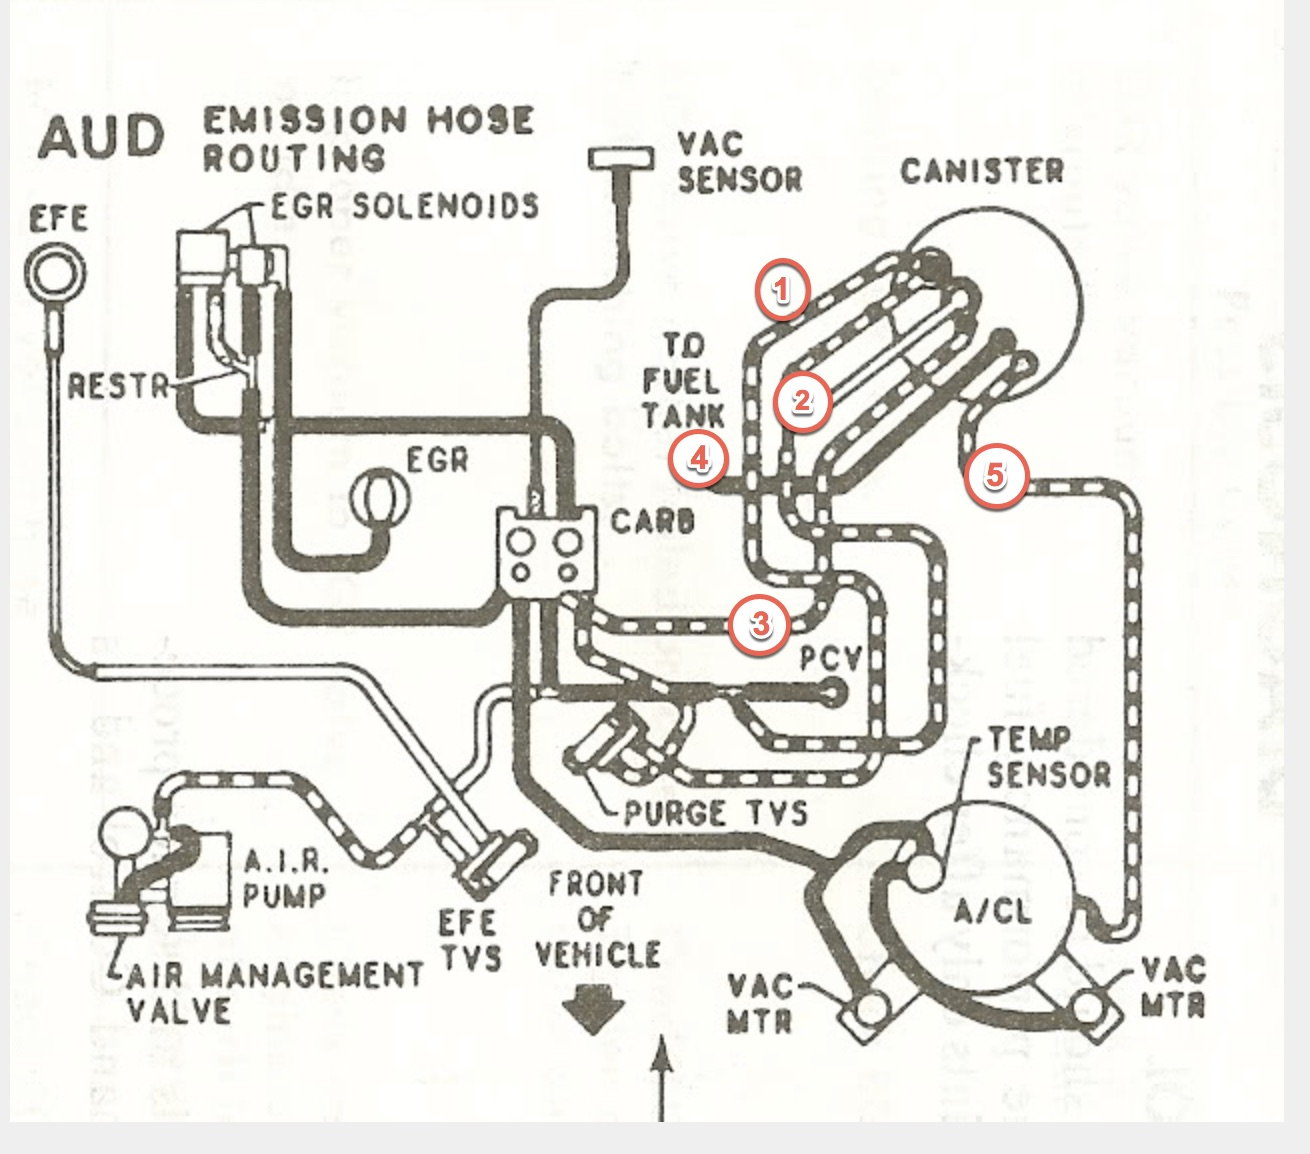 1981 Corvette Engine Compartment Diagram - Home Subwoofer Amp Wiring Diagram  - usb-cable.plug-diagram.jeanjaures37.fr | 1981 Corvette Engine Compartment Diagram |  | Wiring Diagram Resource